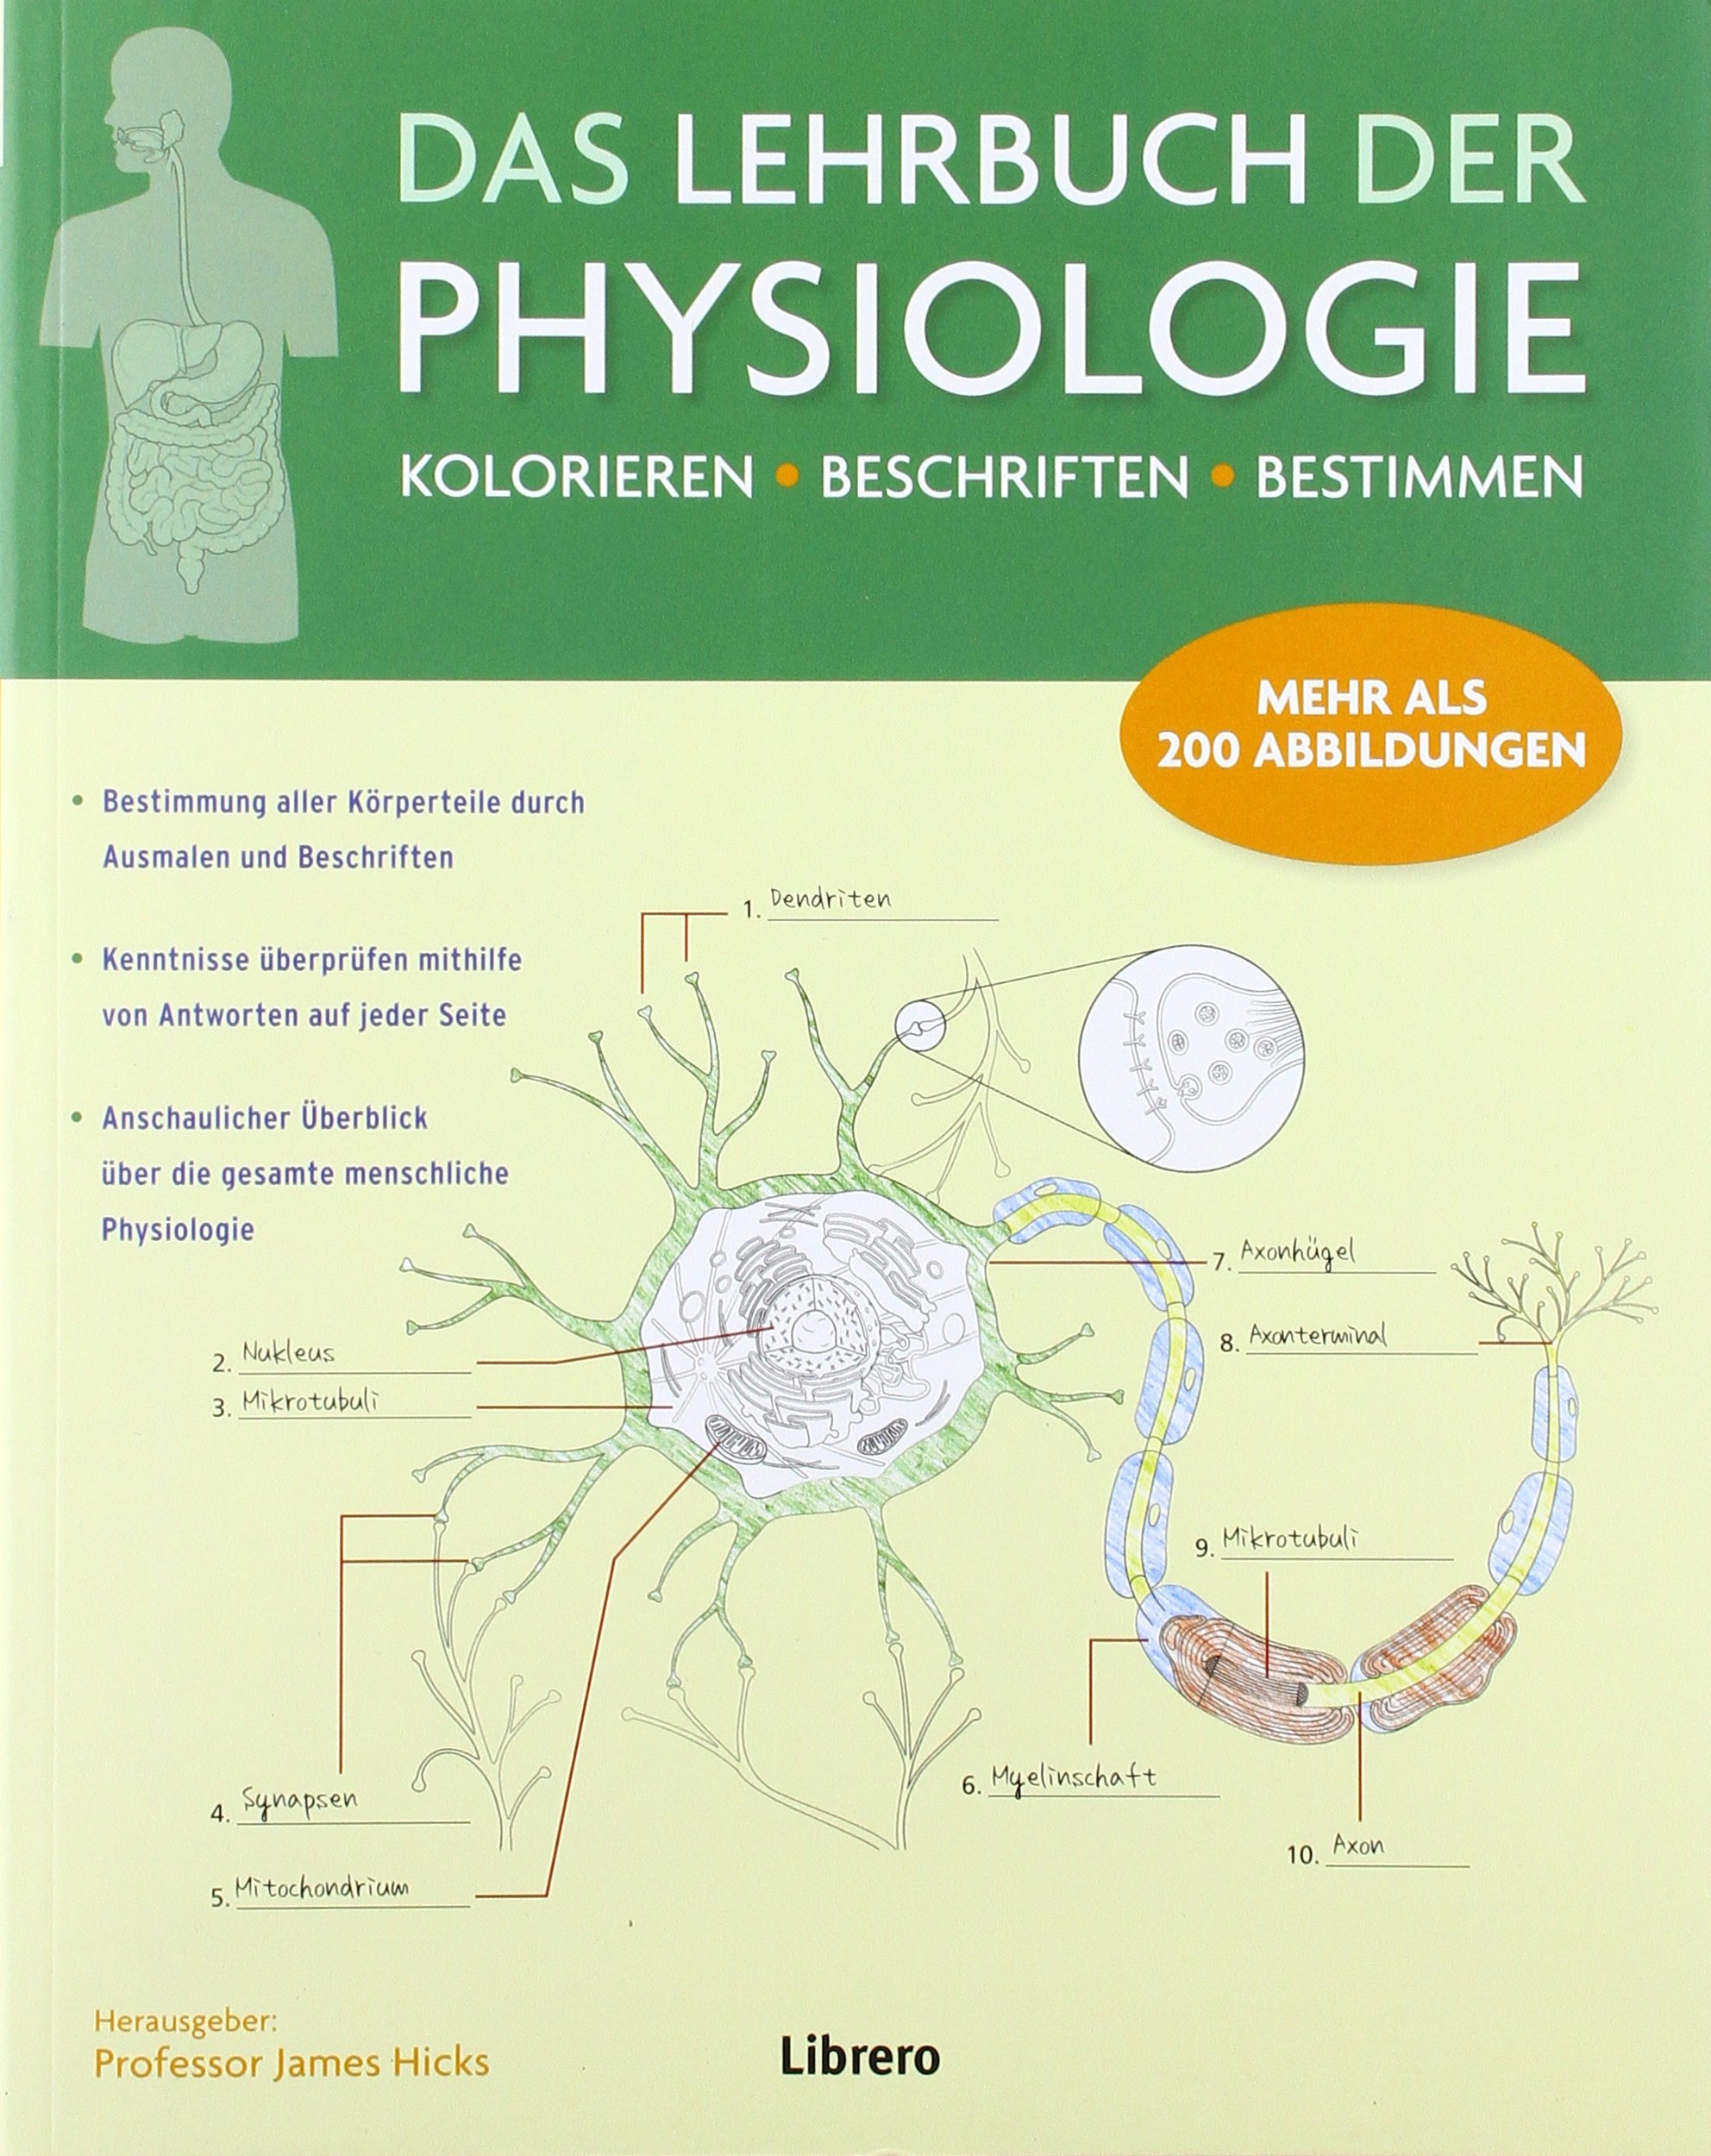 Das Lehrbuch der Physiologie: Amazon.de: James Hicks: Bücher